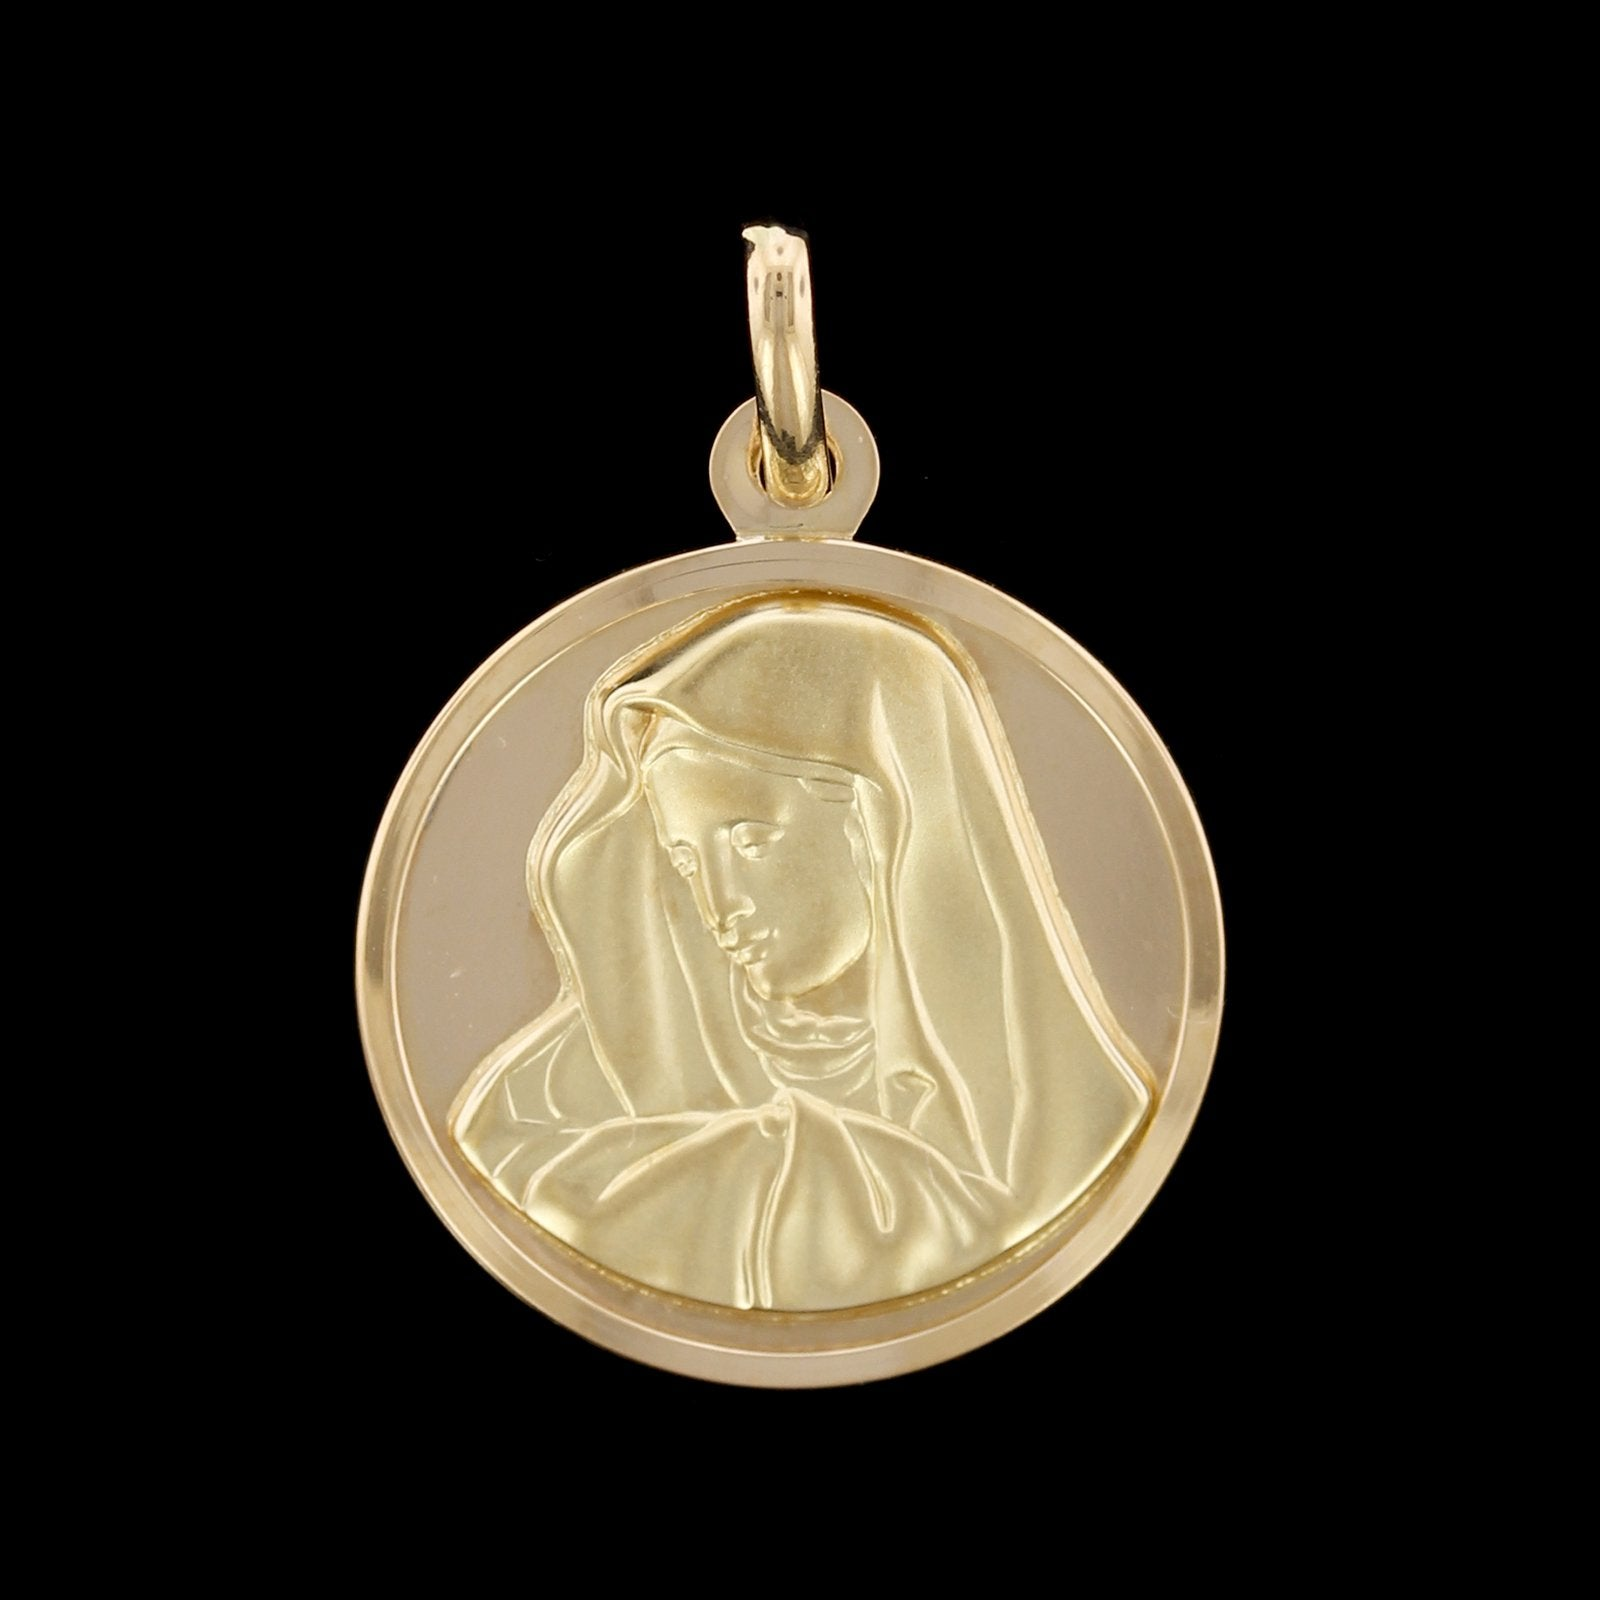 18K Yellow Gold Virgin Mary, Madonna Medal